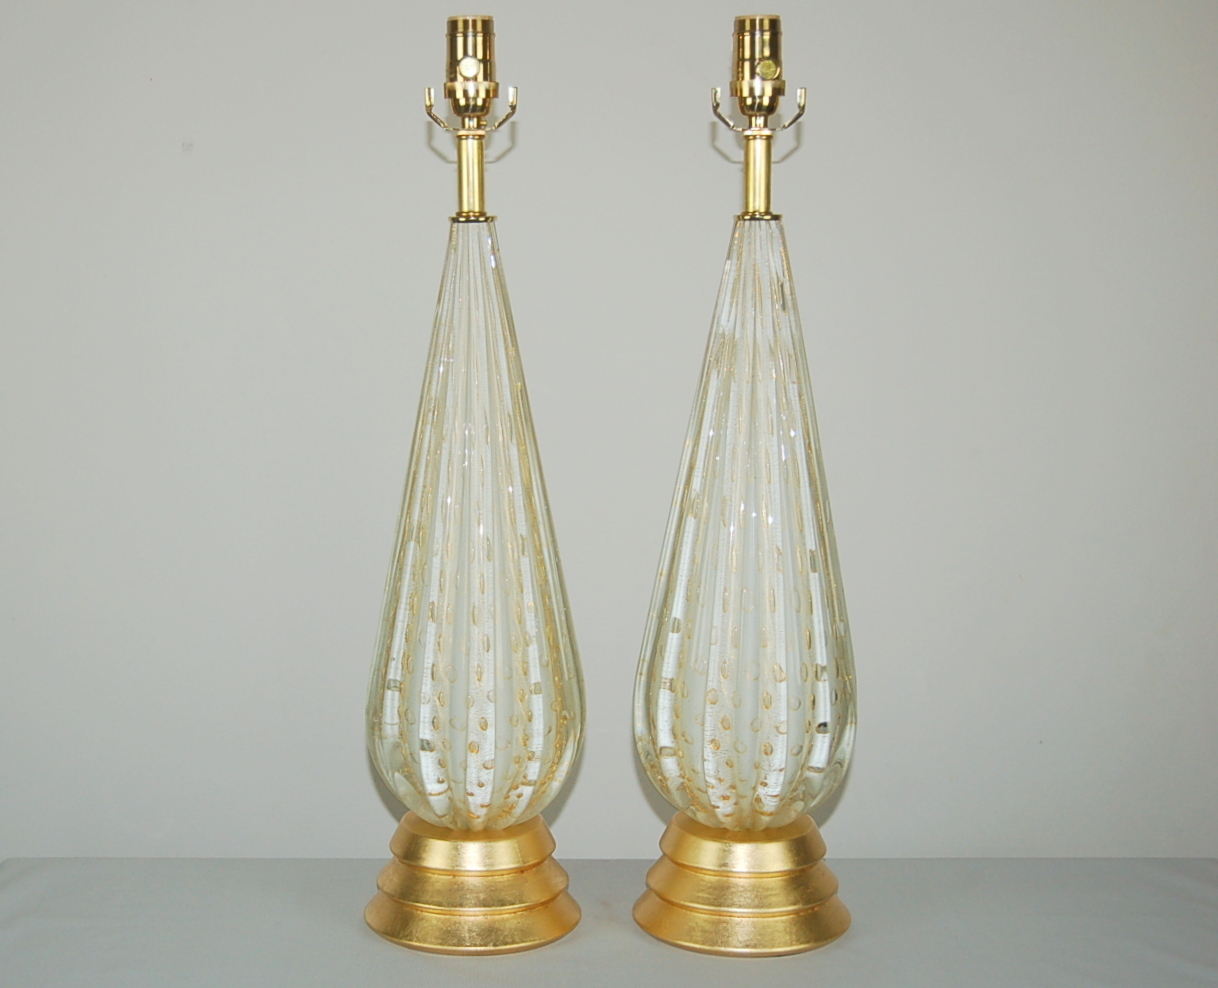 Vintage Murano Glass Table Lamps White Gold Swank Lighting